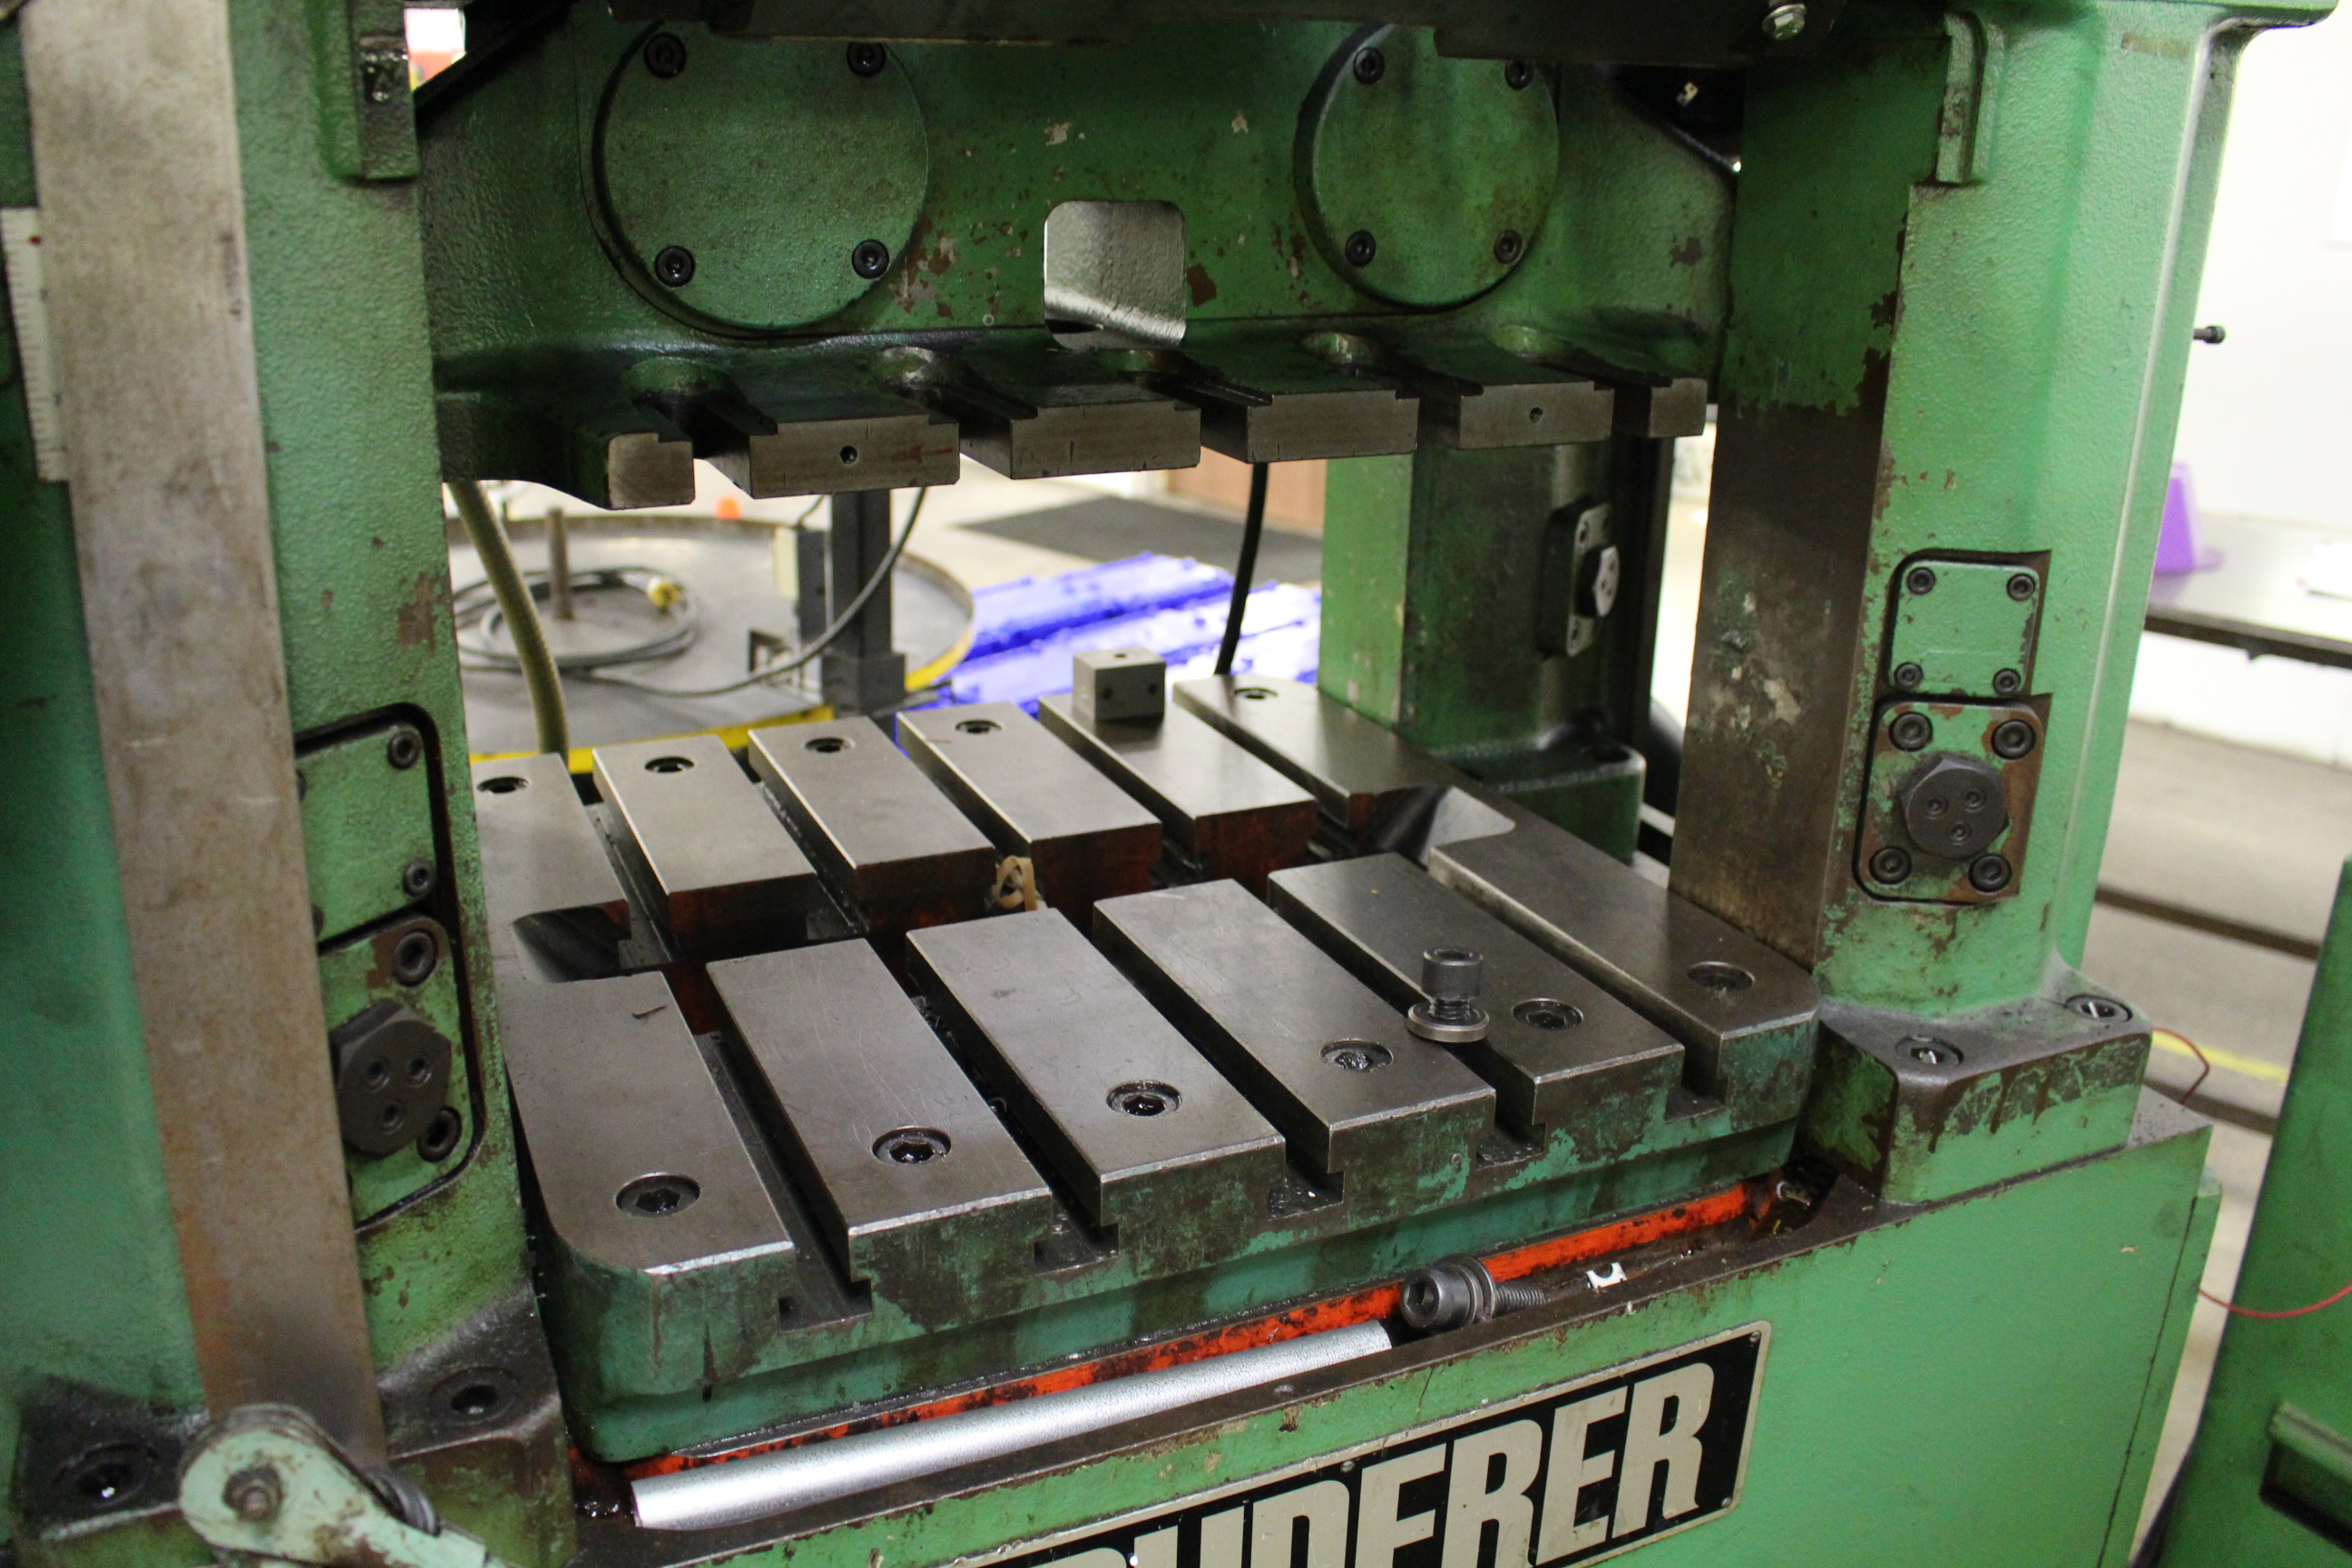 "BRUDERER MODEL BSTA 25 HIGH SPEED STAMPING PRESS, 25 TON CAPACITY, 21.26"" X 20.8"" BOLSTER, 100-1,500 - Image 5 of 8"